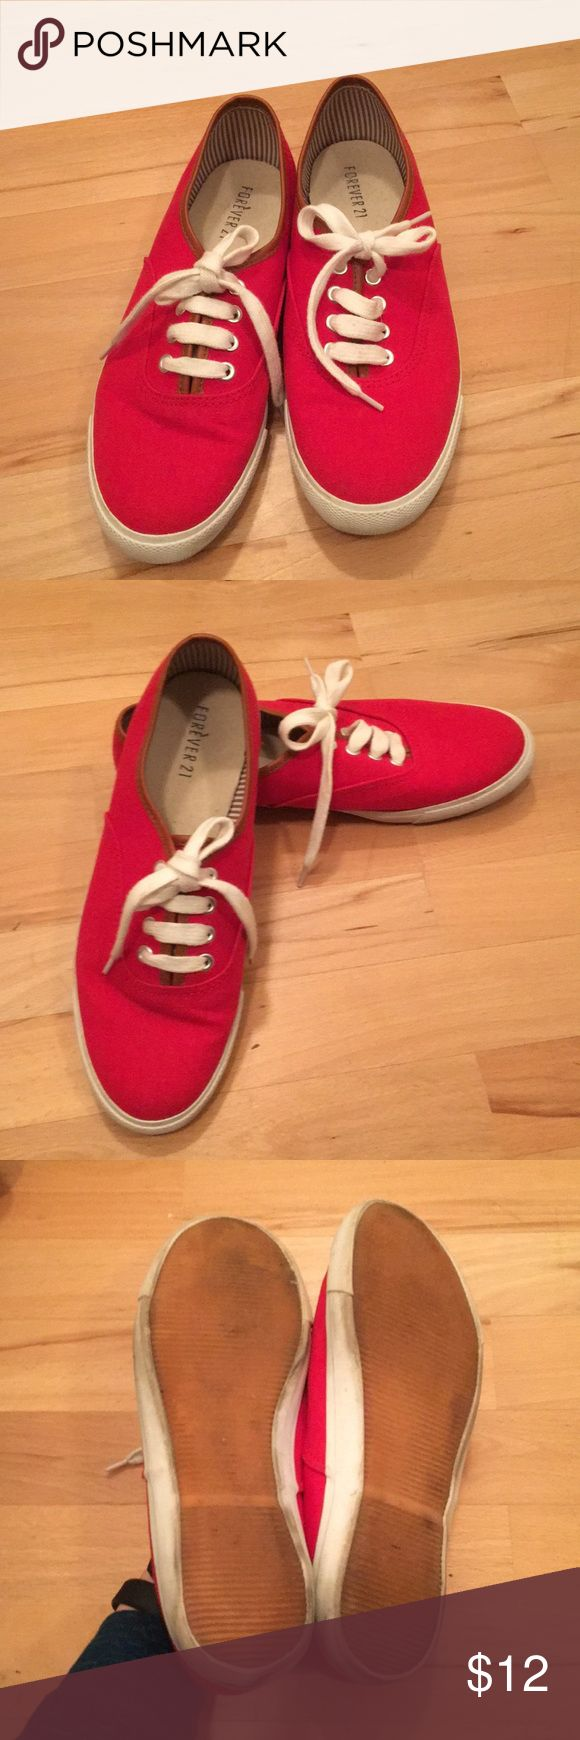 Forever 21 Red Sneakers Forever 21 Red Sneakers White trim has some scuff marks otherwise good condition. Worn a handful of times. Forever 21 Shoes Sneakers